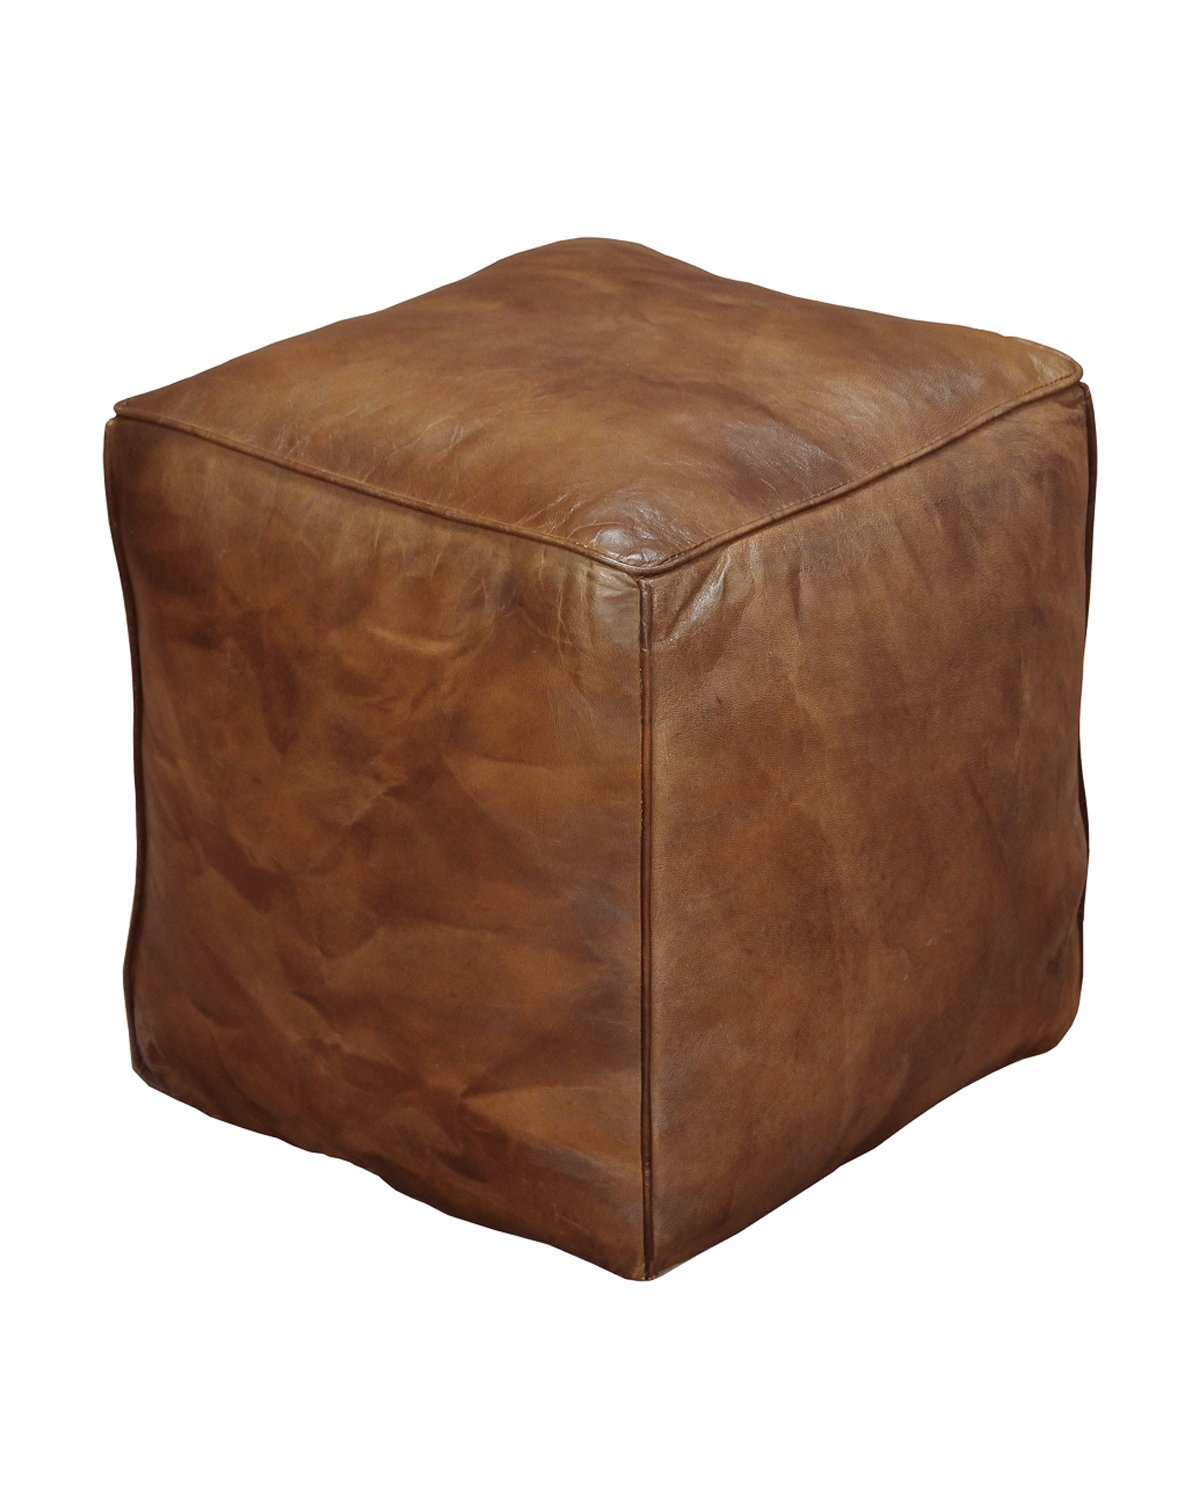 Aldo_Leather_Pouf_2.jpg